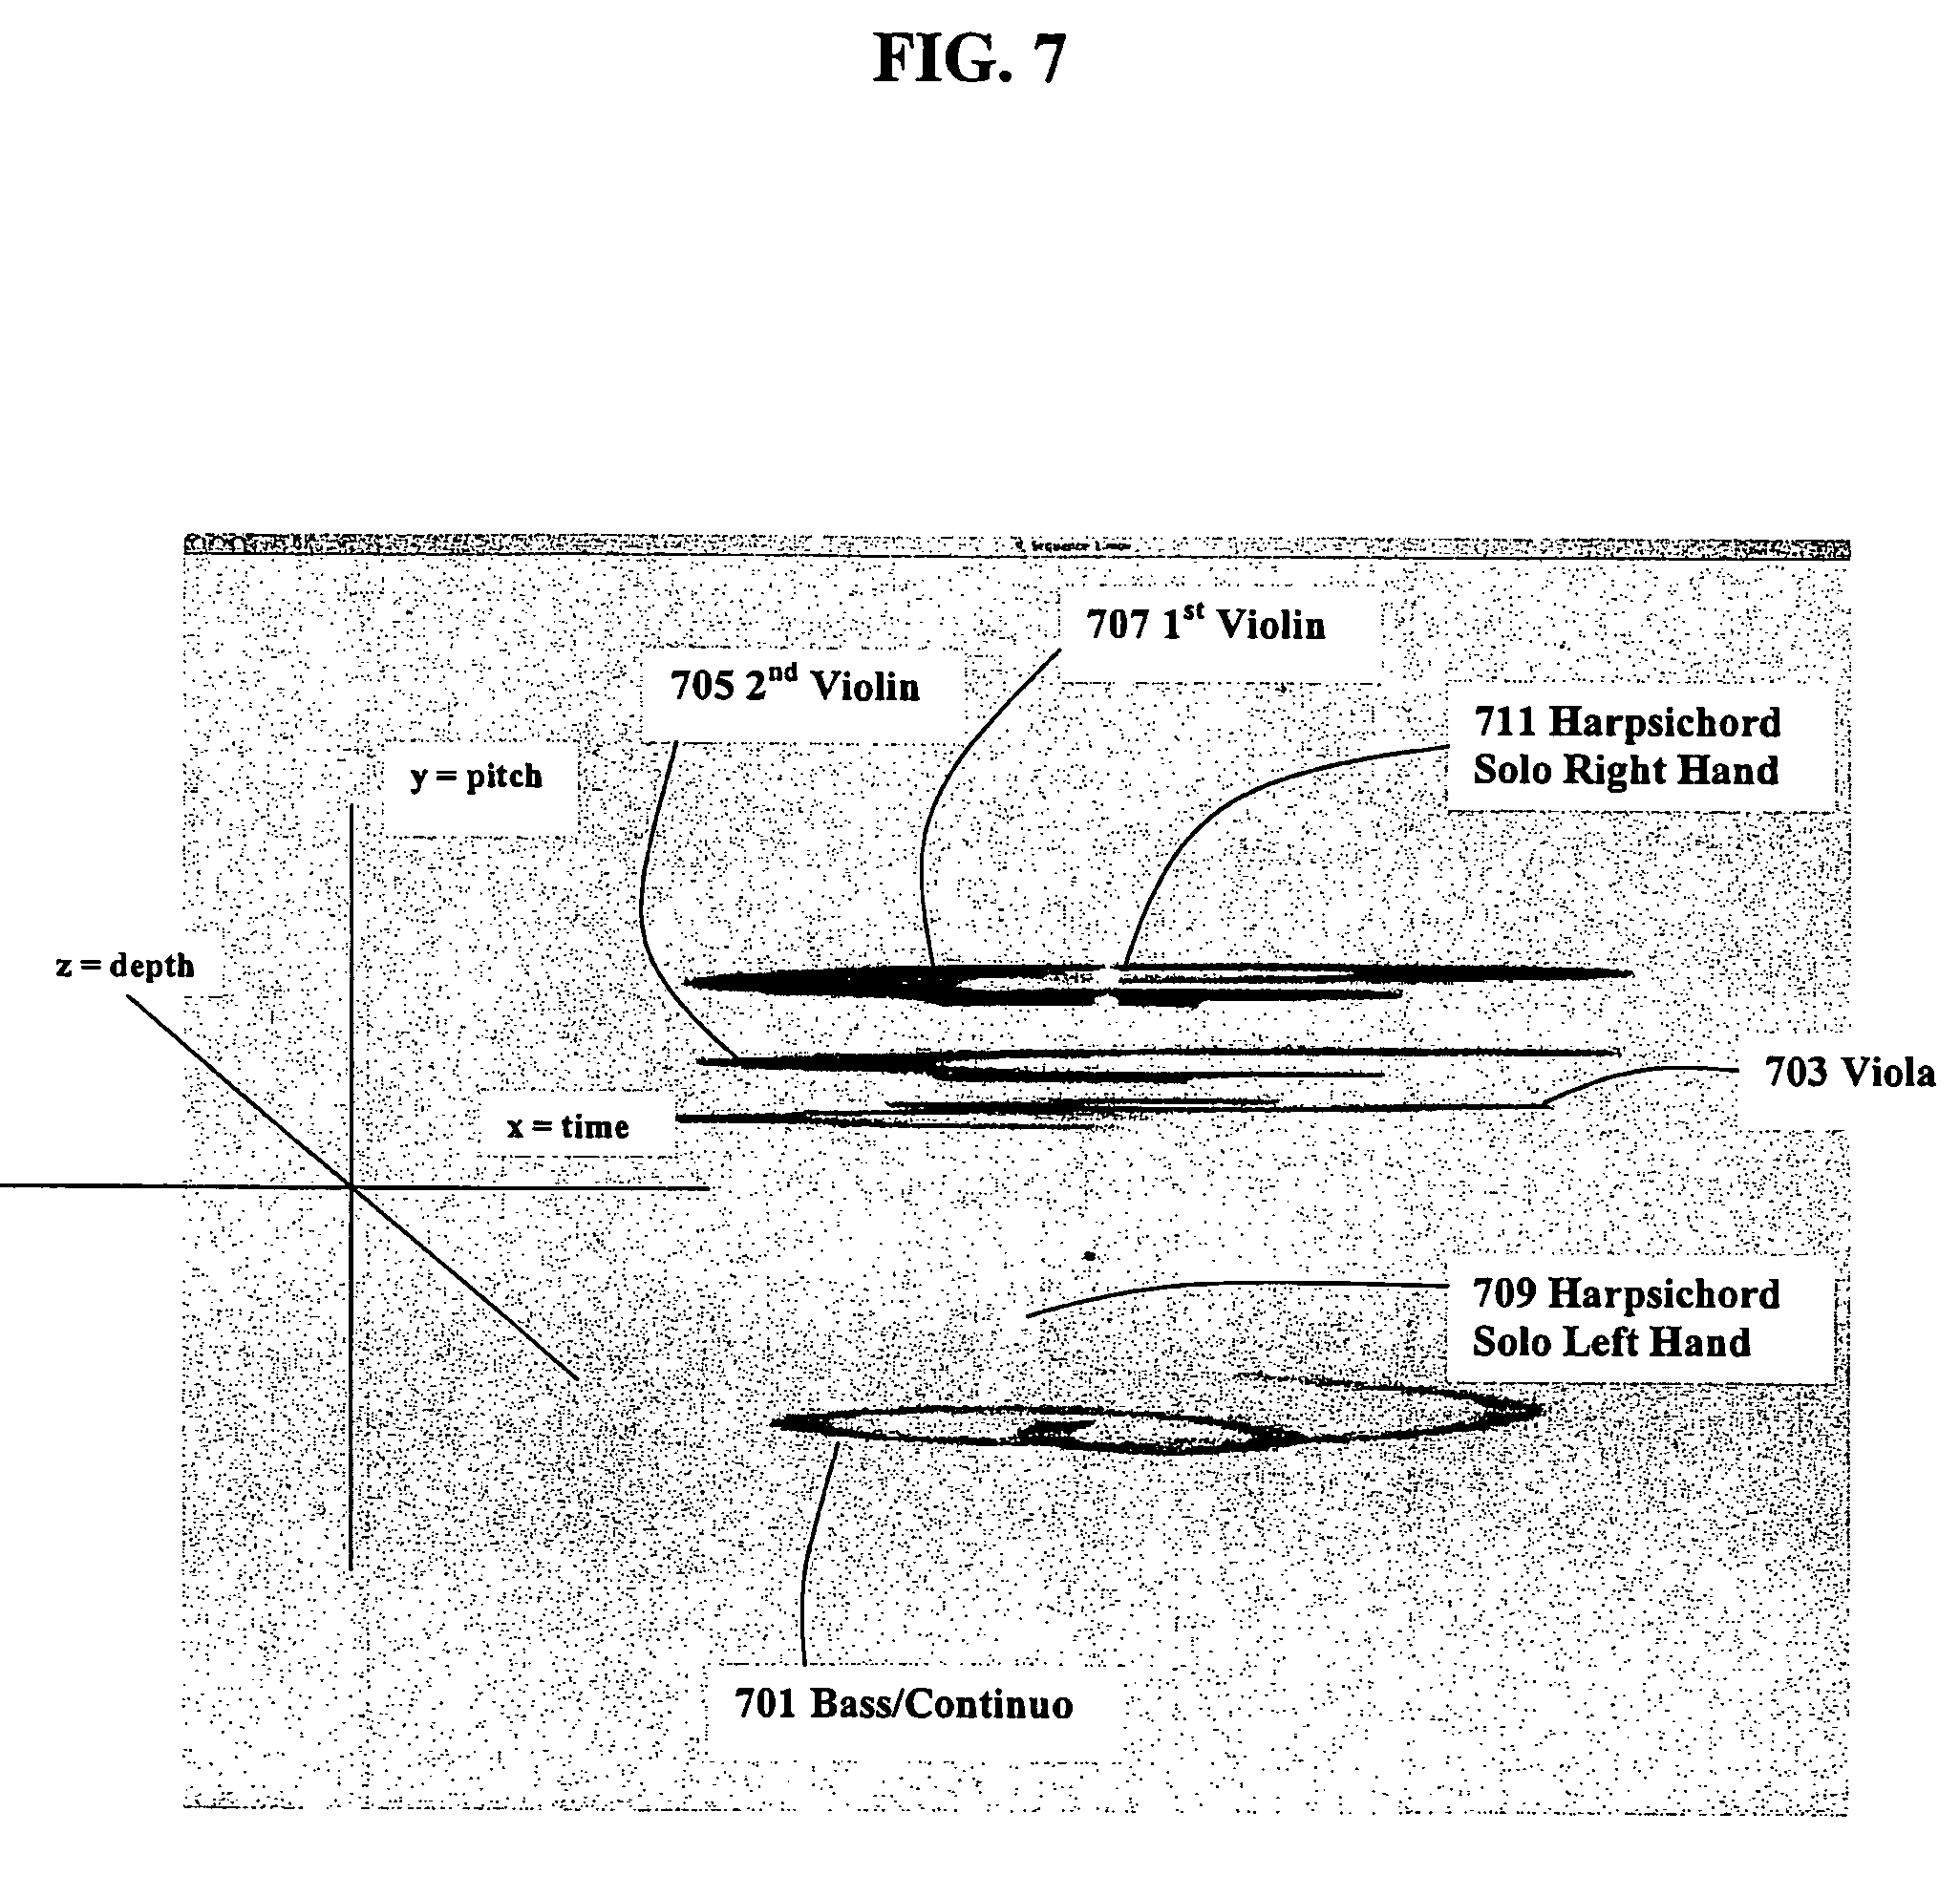 Patent Us7589727 Method And Apparatus For Generating Visual Images Diagrams The Most Common Methods Of Installing Fantasia Fans Drawing